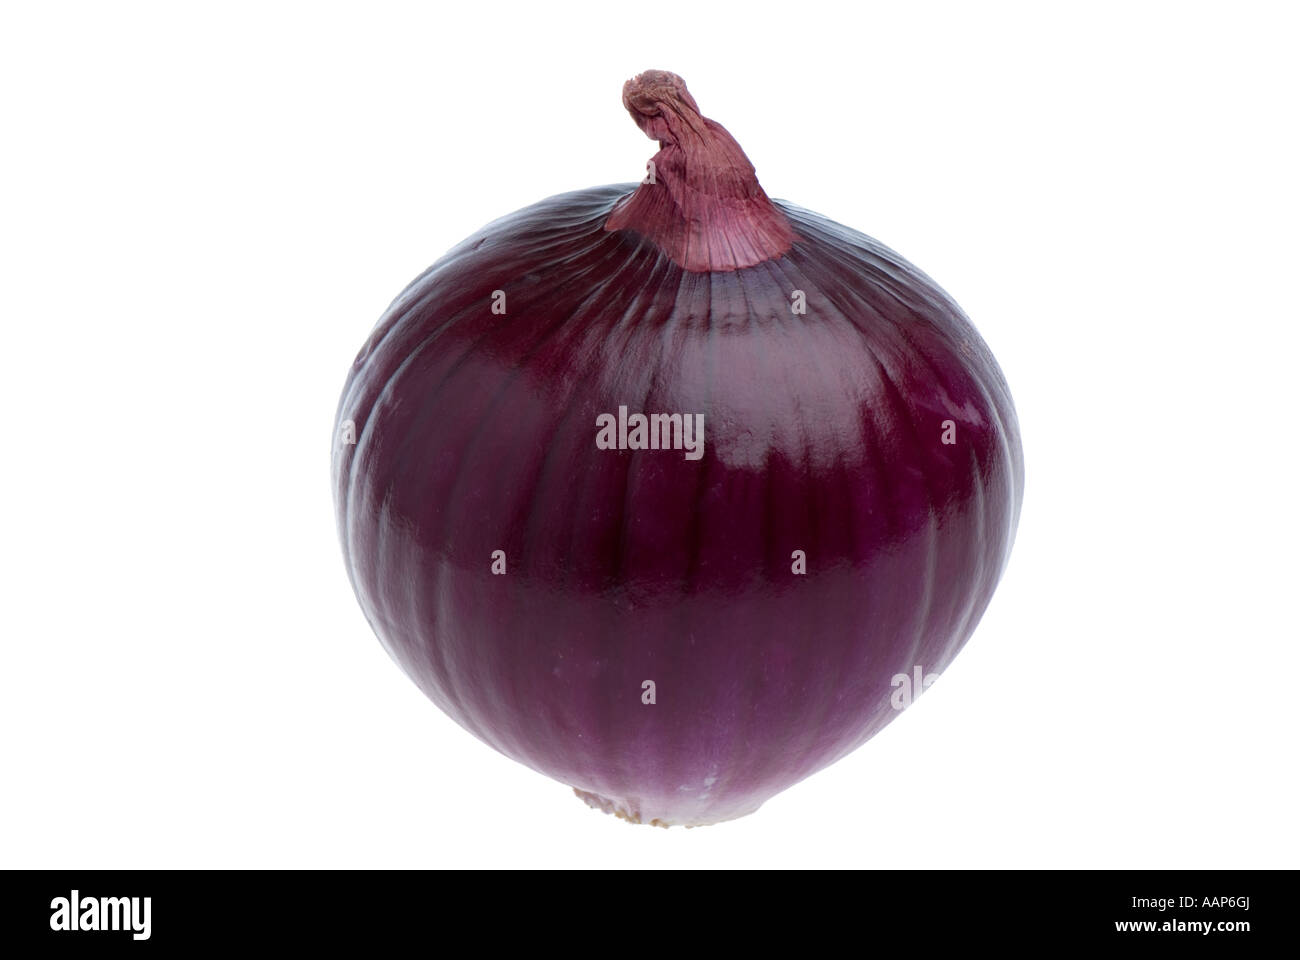 Red onion cutout on white background - Stock Image